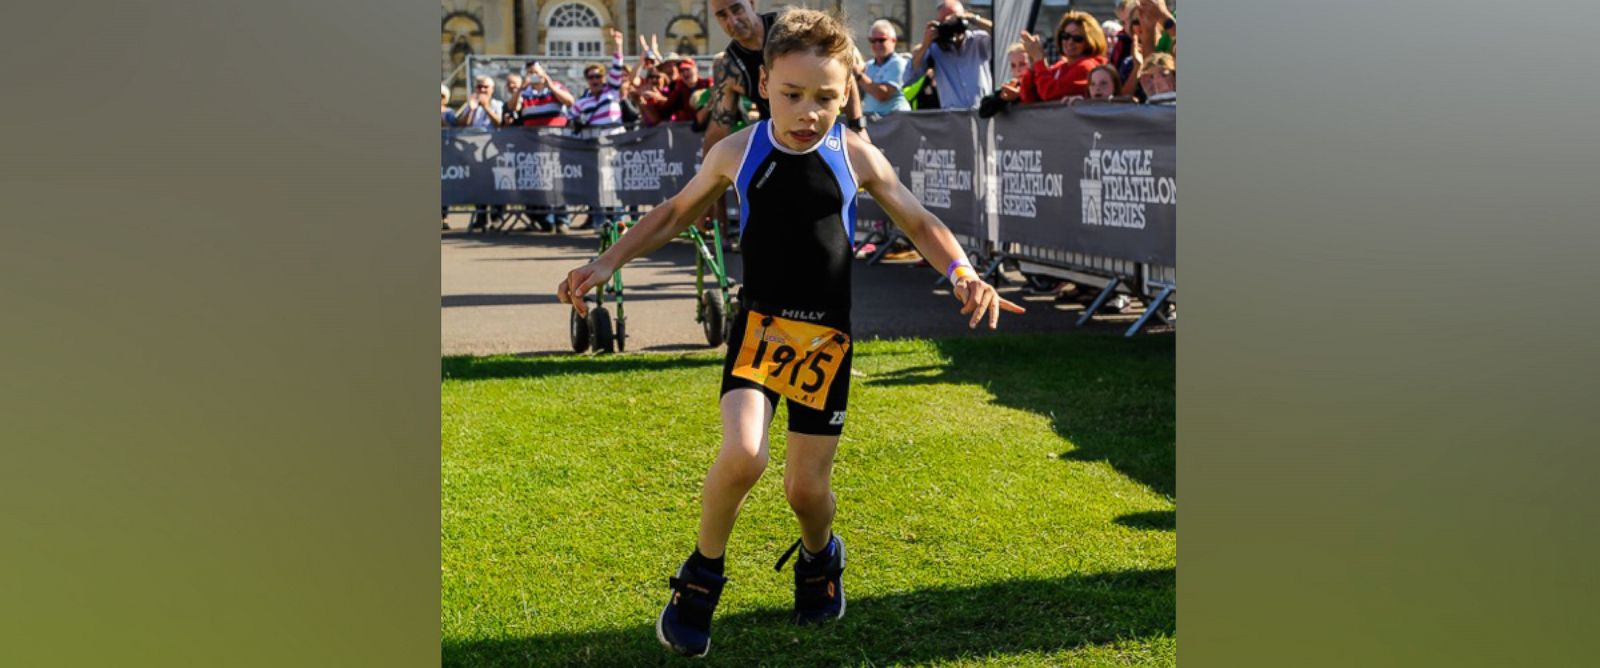 PHOTO: Bailey Matthews, a 9-year-old boy with cerebral palsy, successfully competed in the Castle Howard Triathlon in North Yorkshire, England, July 2015.